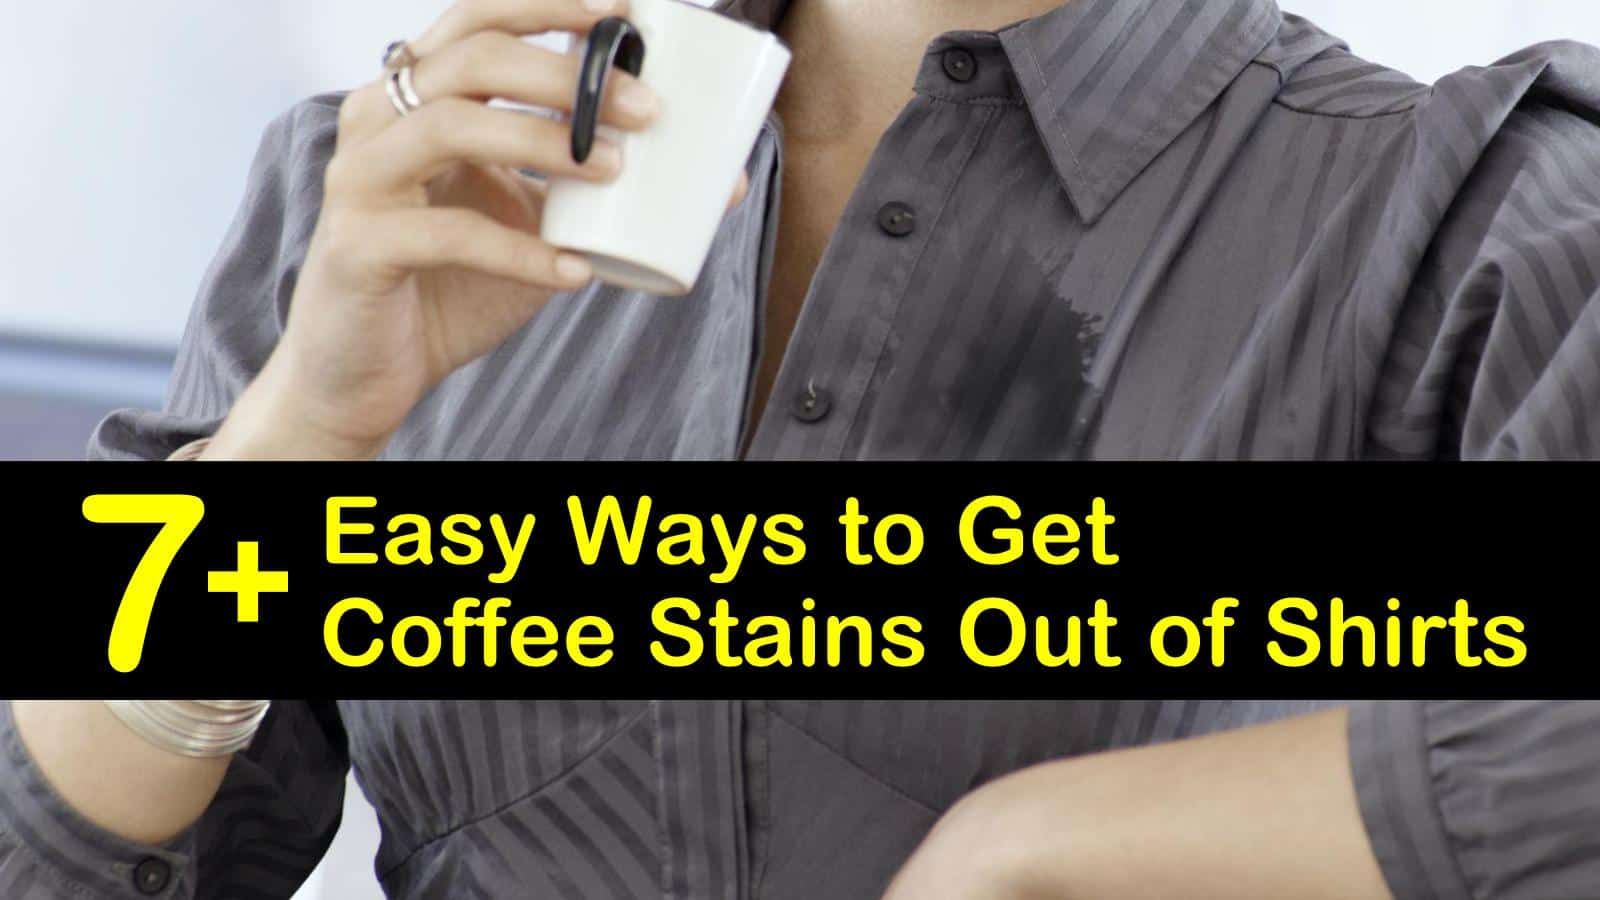 how to get coffee stains out of shirts titleimg1